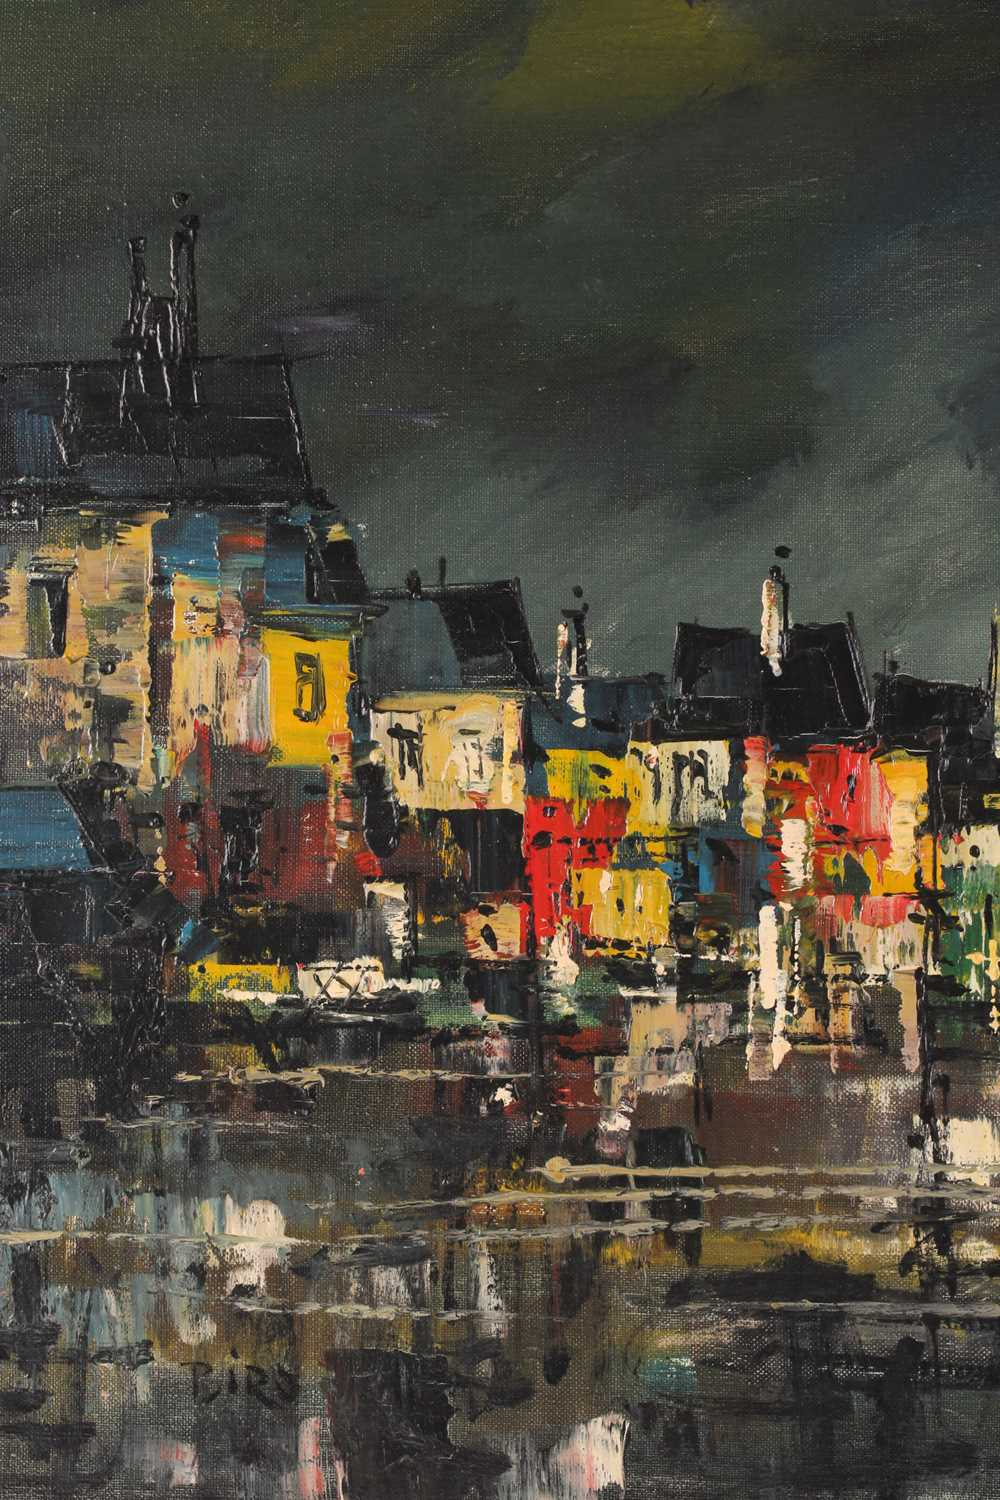 Biro, 20th century school, a townscape painted at night, oil on canvas, signed to lower left corner, - Image 4 of 6